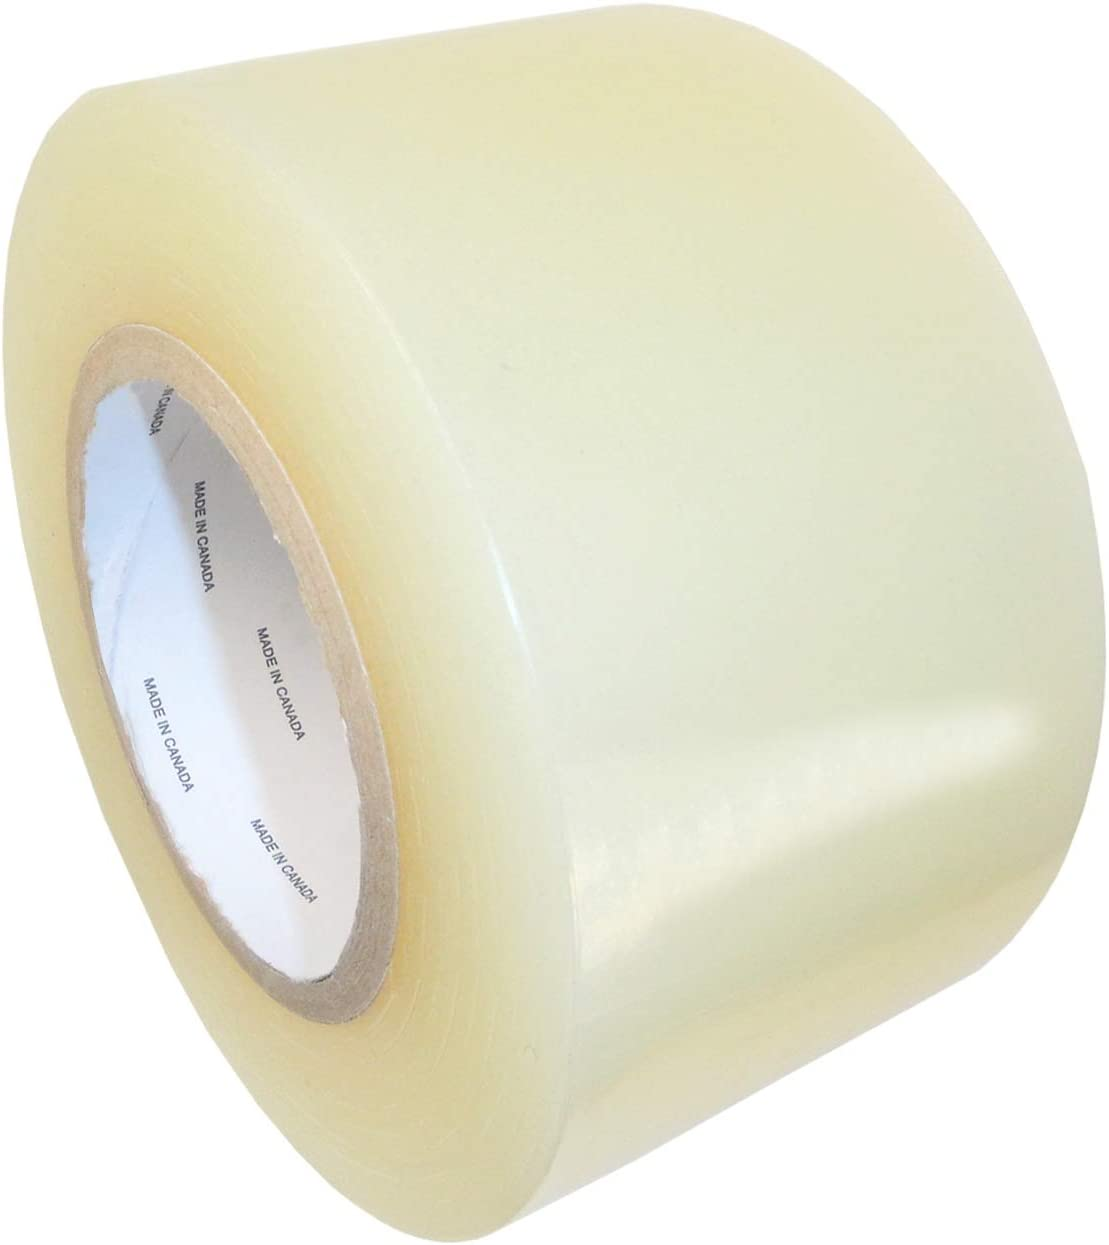 "T.R.U. Heavy-Duty Greenhouse Polyethylene Repair Weatherseal Film Tape. Long Term UV Exposure Ideal for Sealing and Seaming. (Clear, 2"" X 36 Yards)"